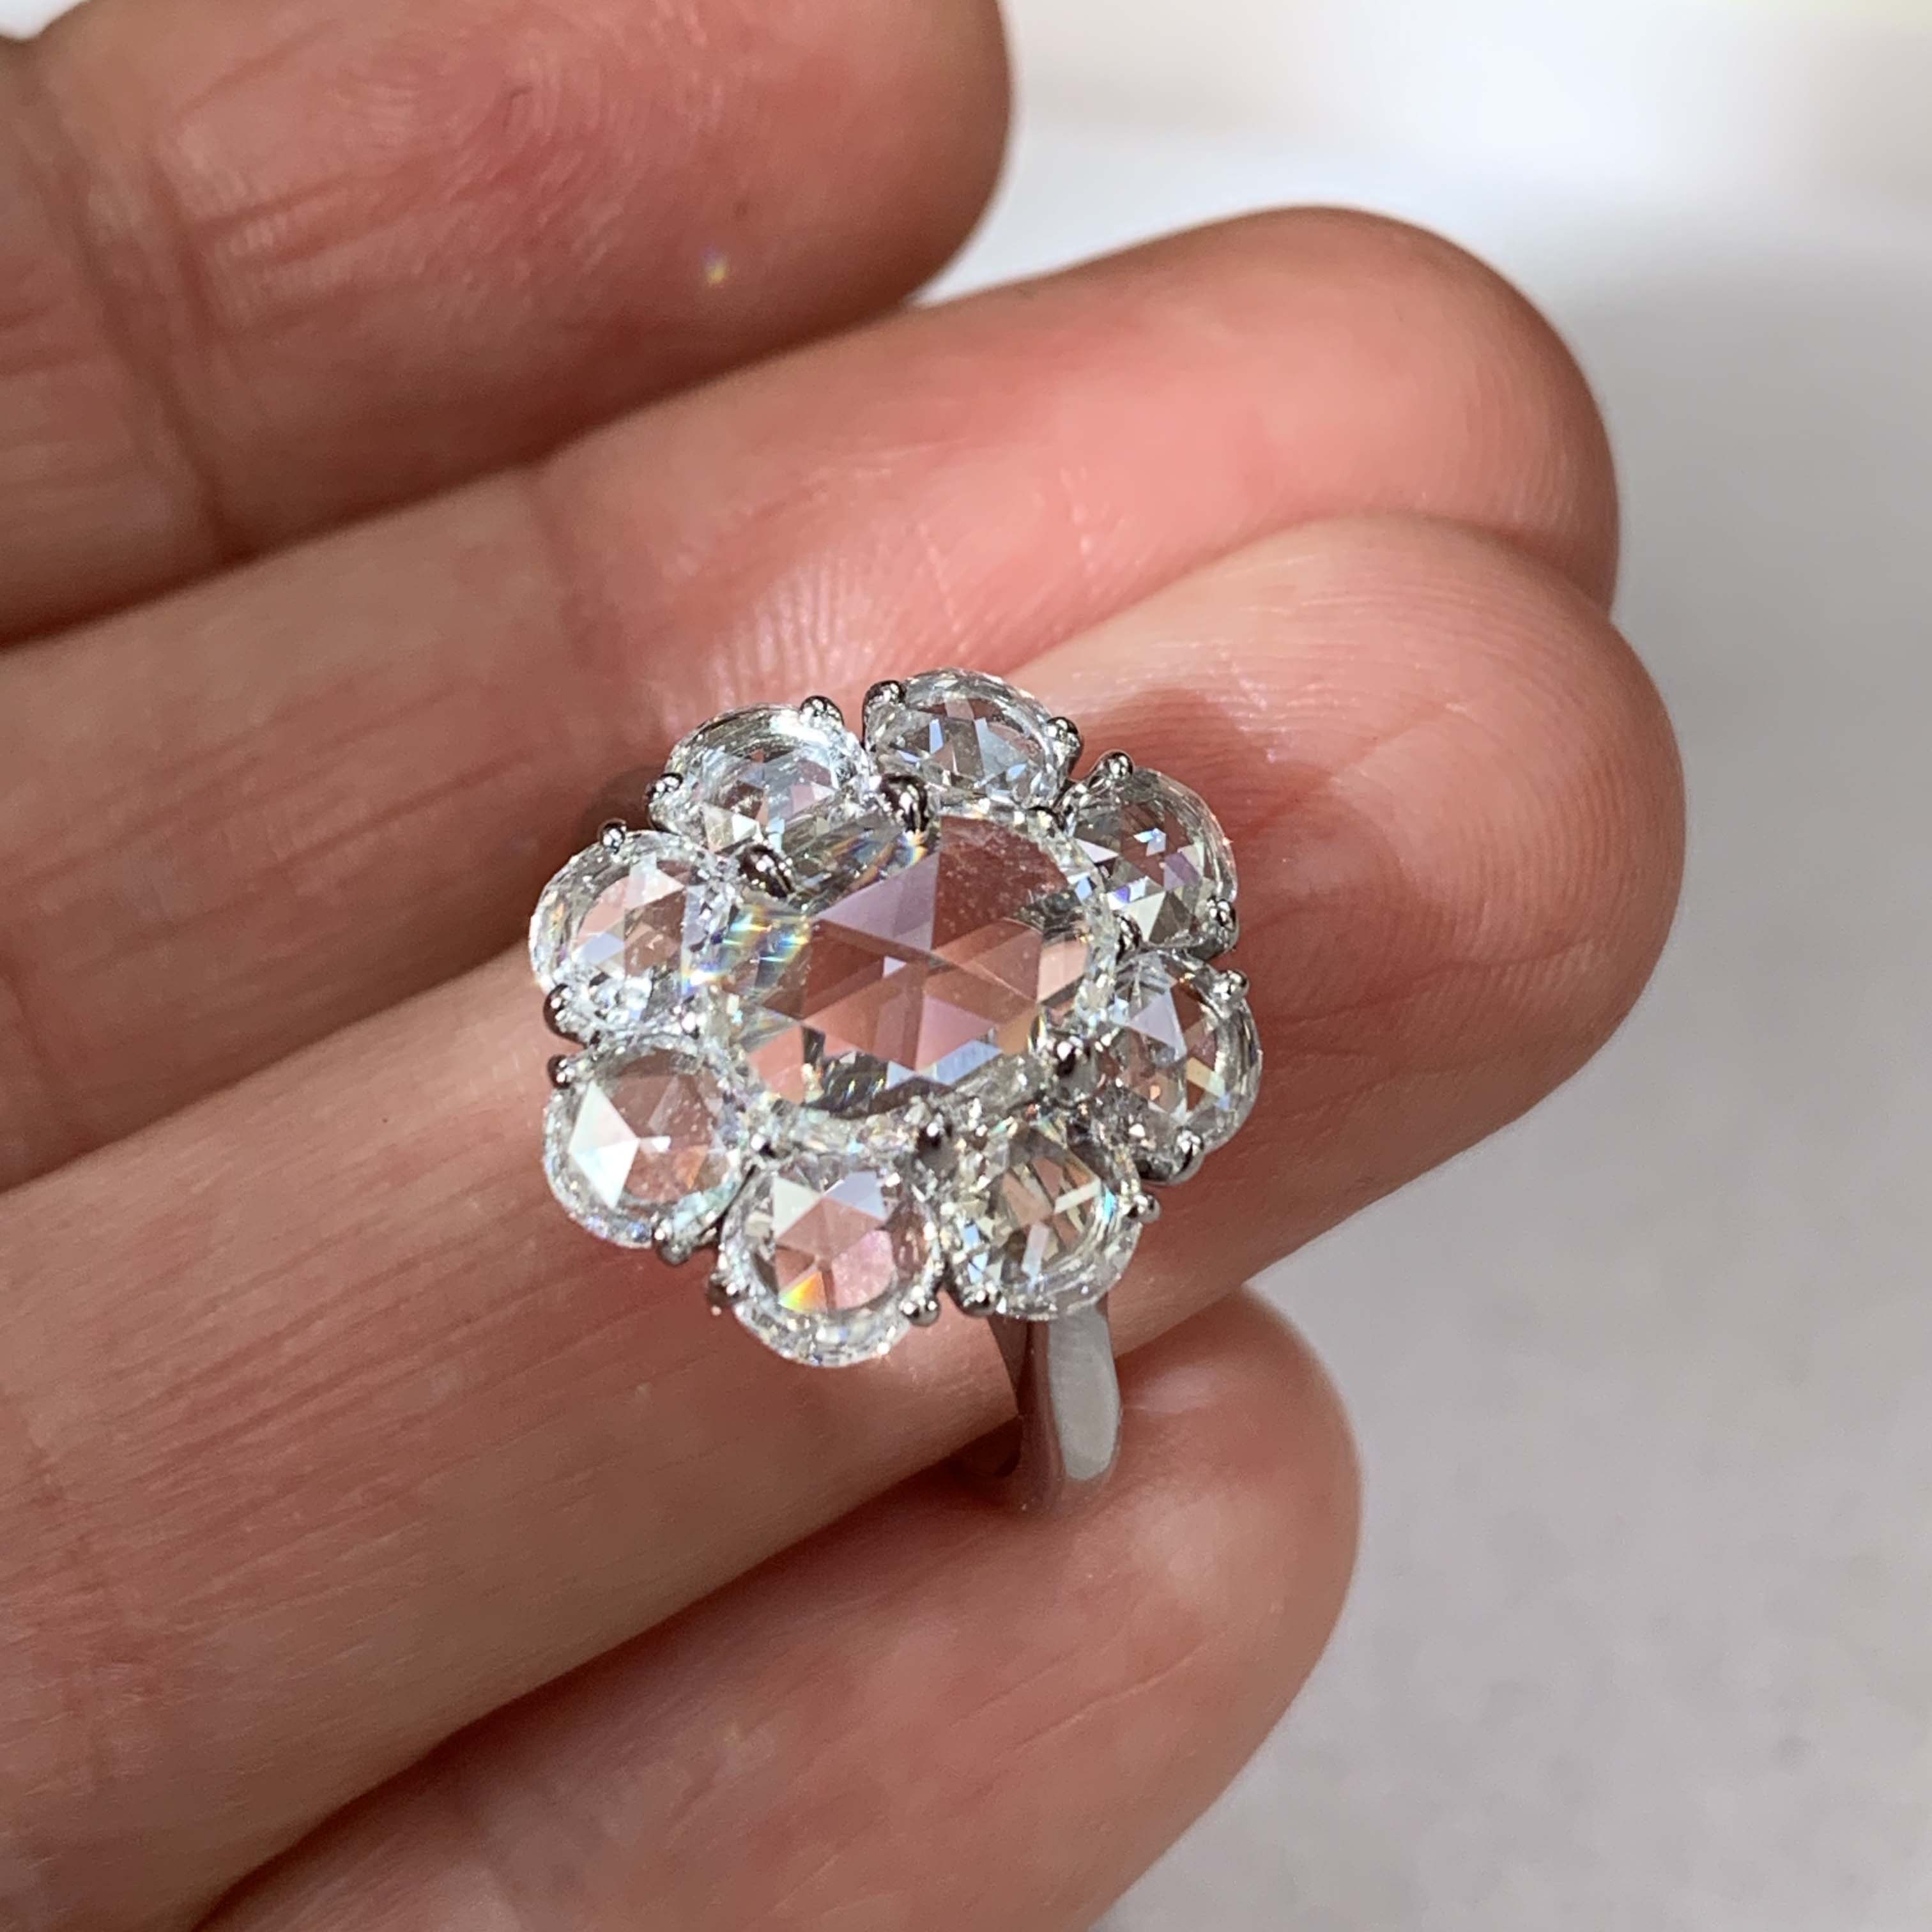 Rose cut diamond engagement ring from Bayco